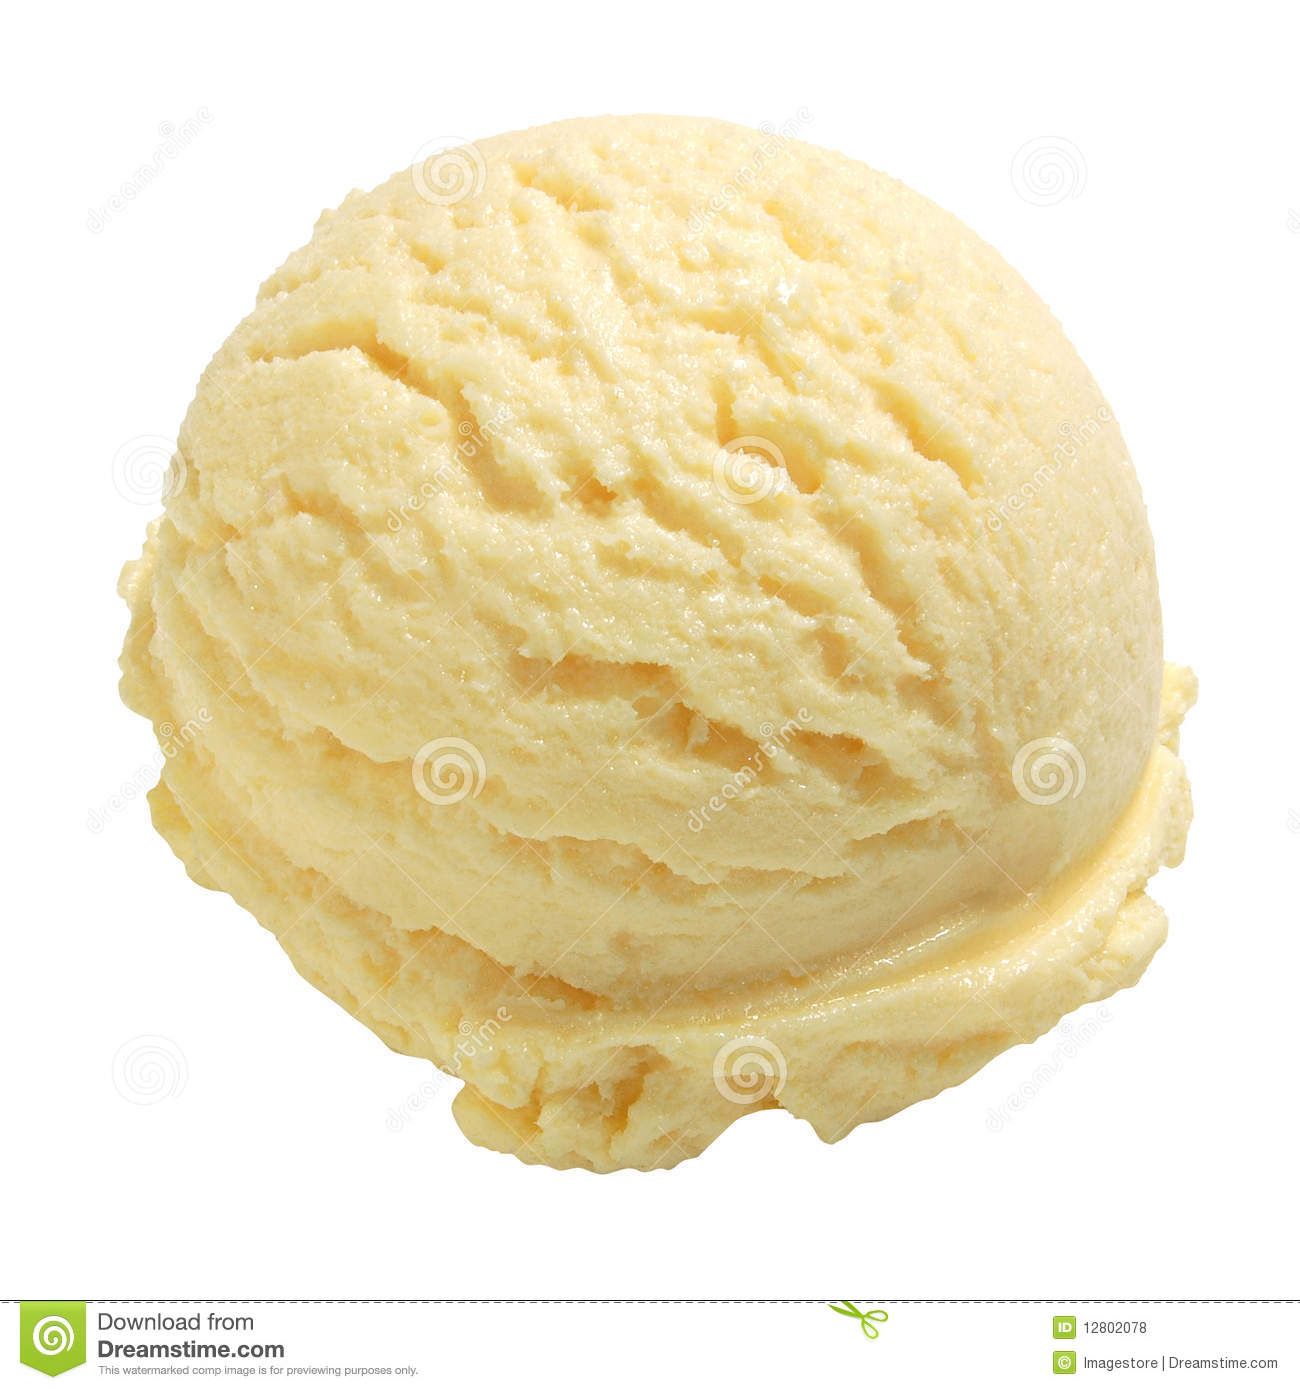 Lemon Ice Cream Royalty Free Stock Photos - Image: 12802078